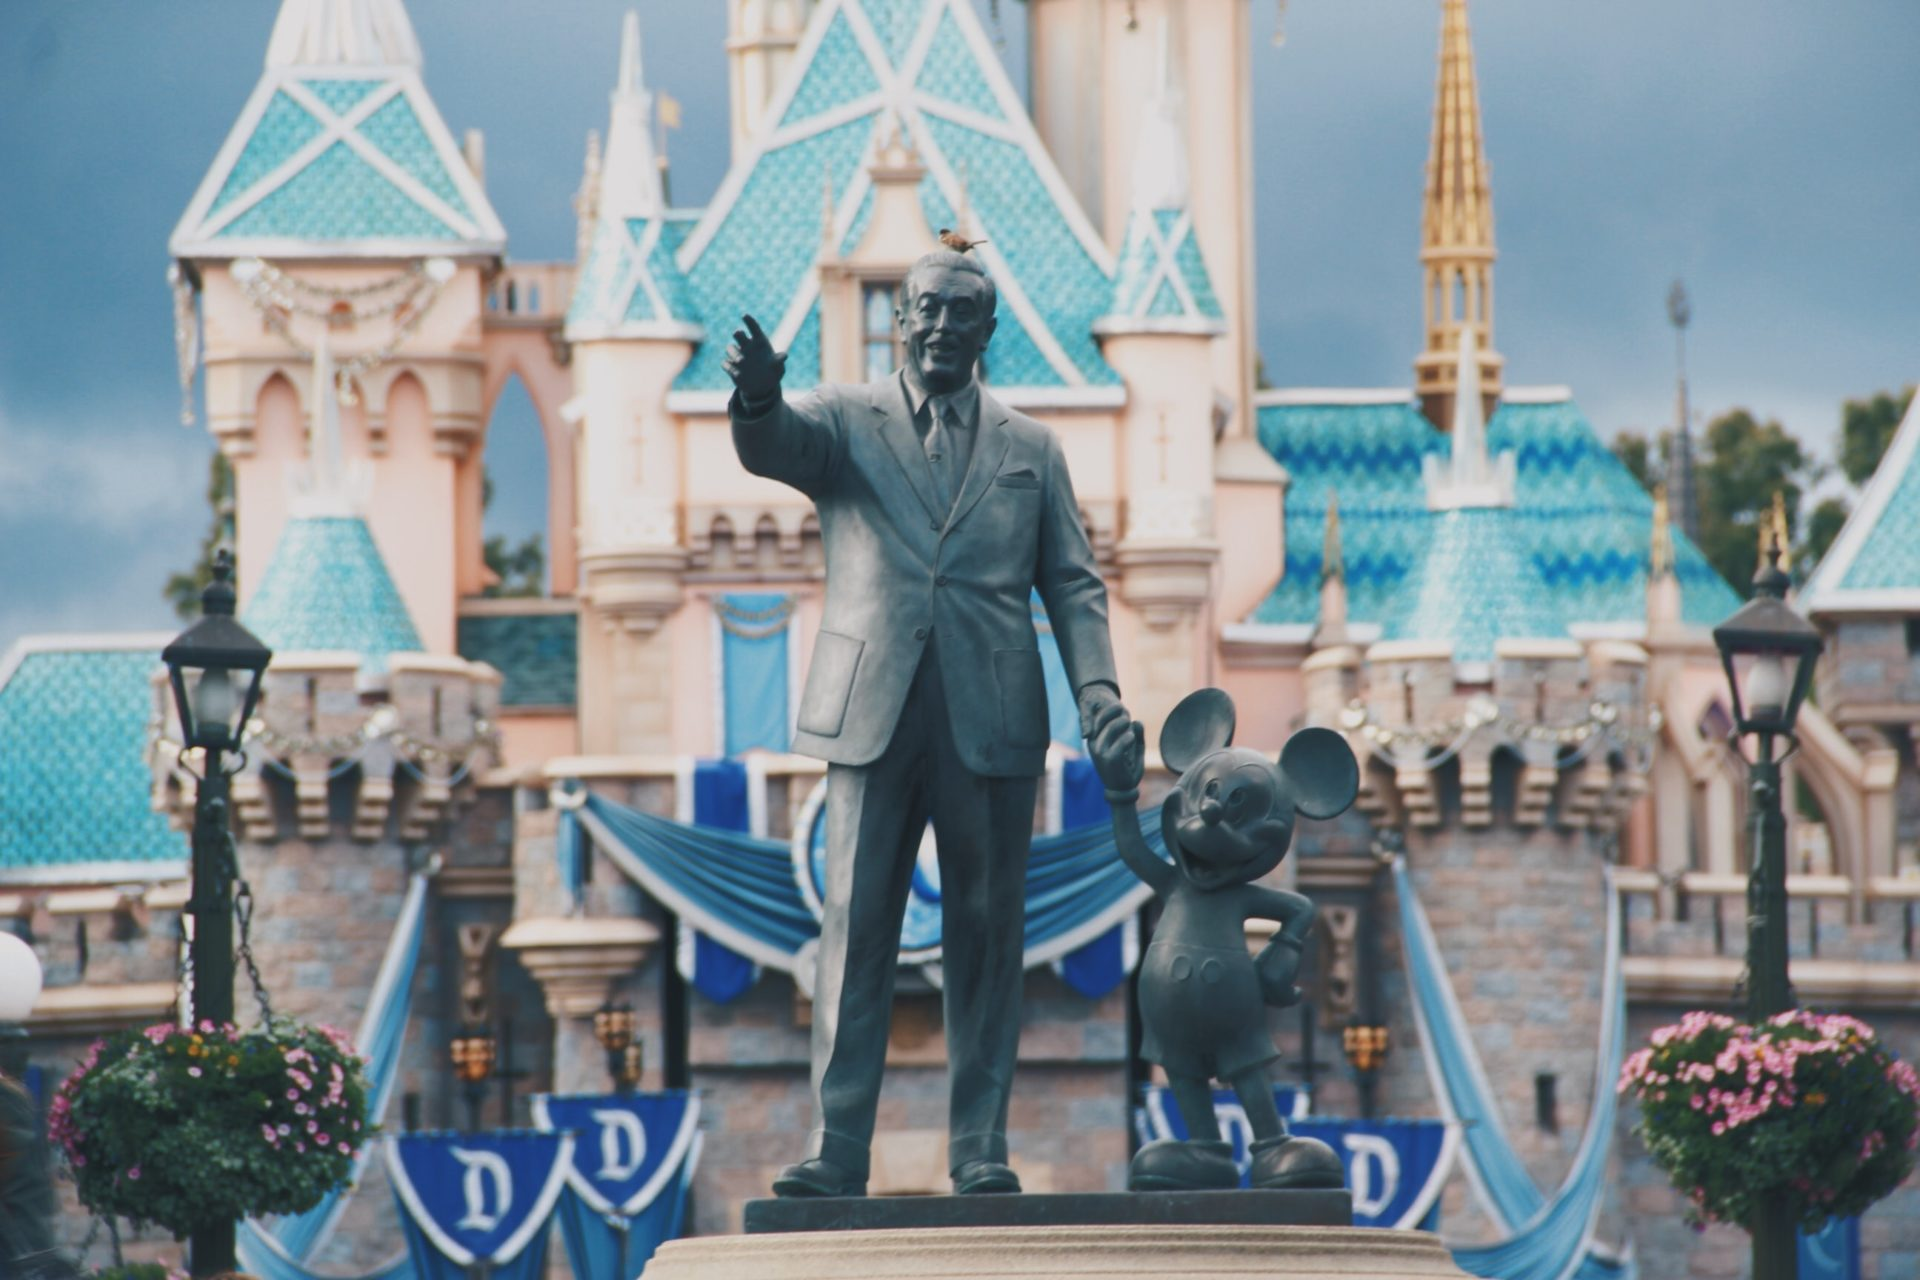 statues of Walt Disney and Mickey Mouse in front of Cinderella's castle